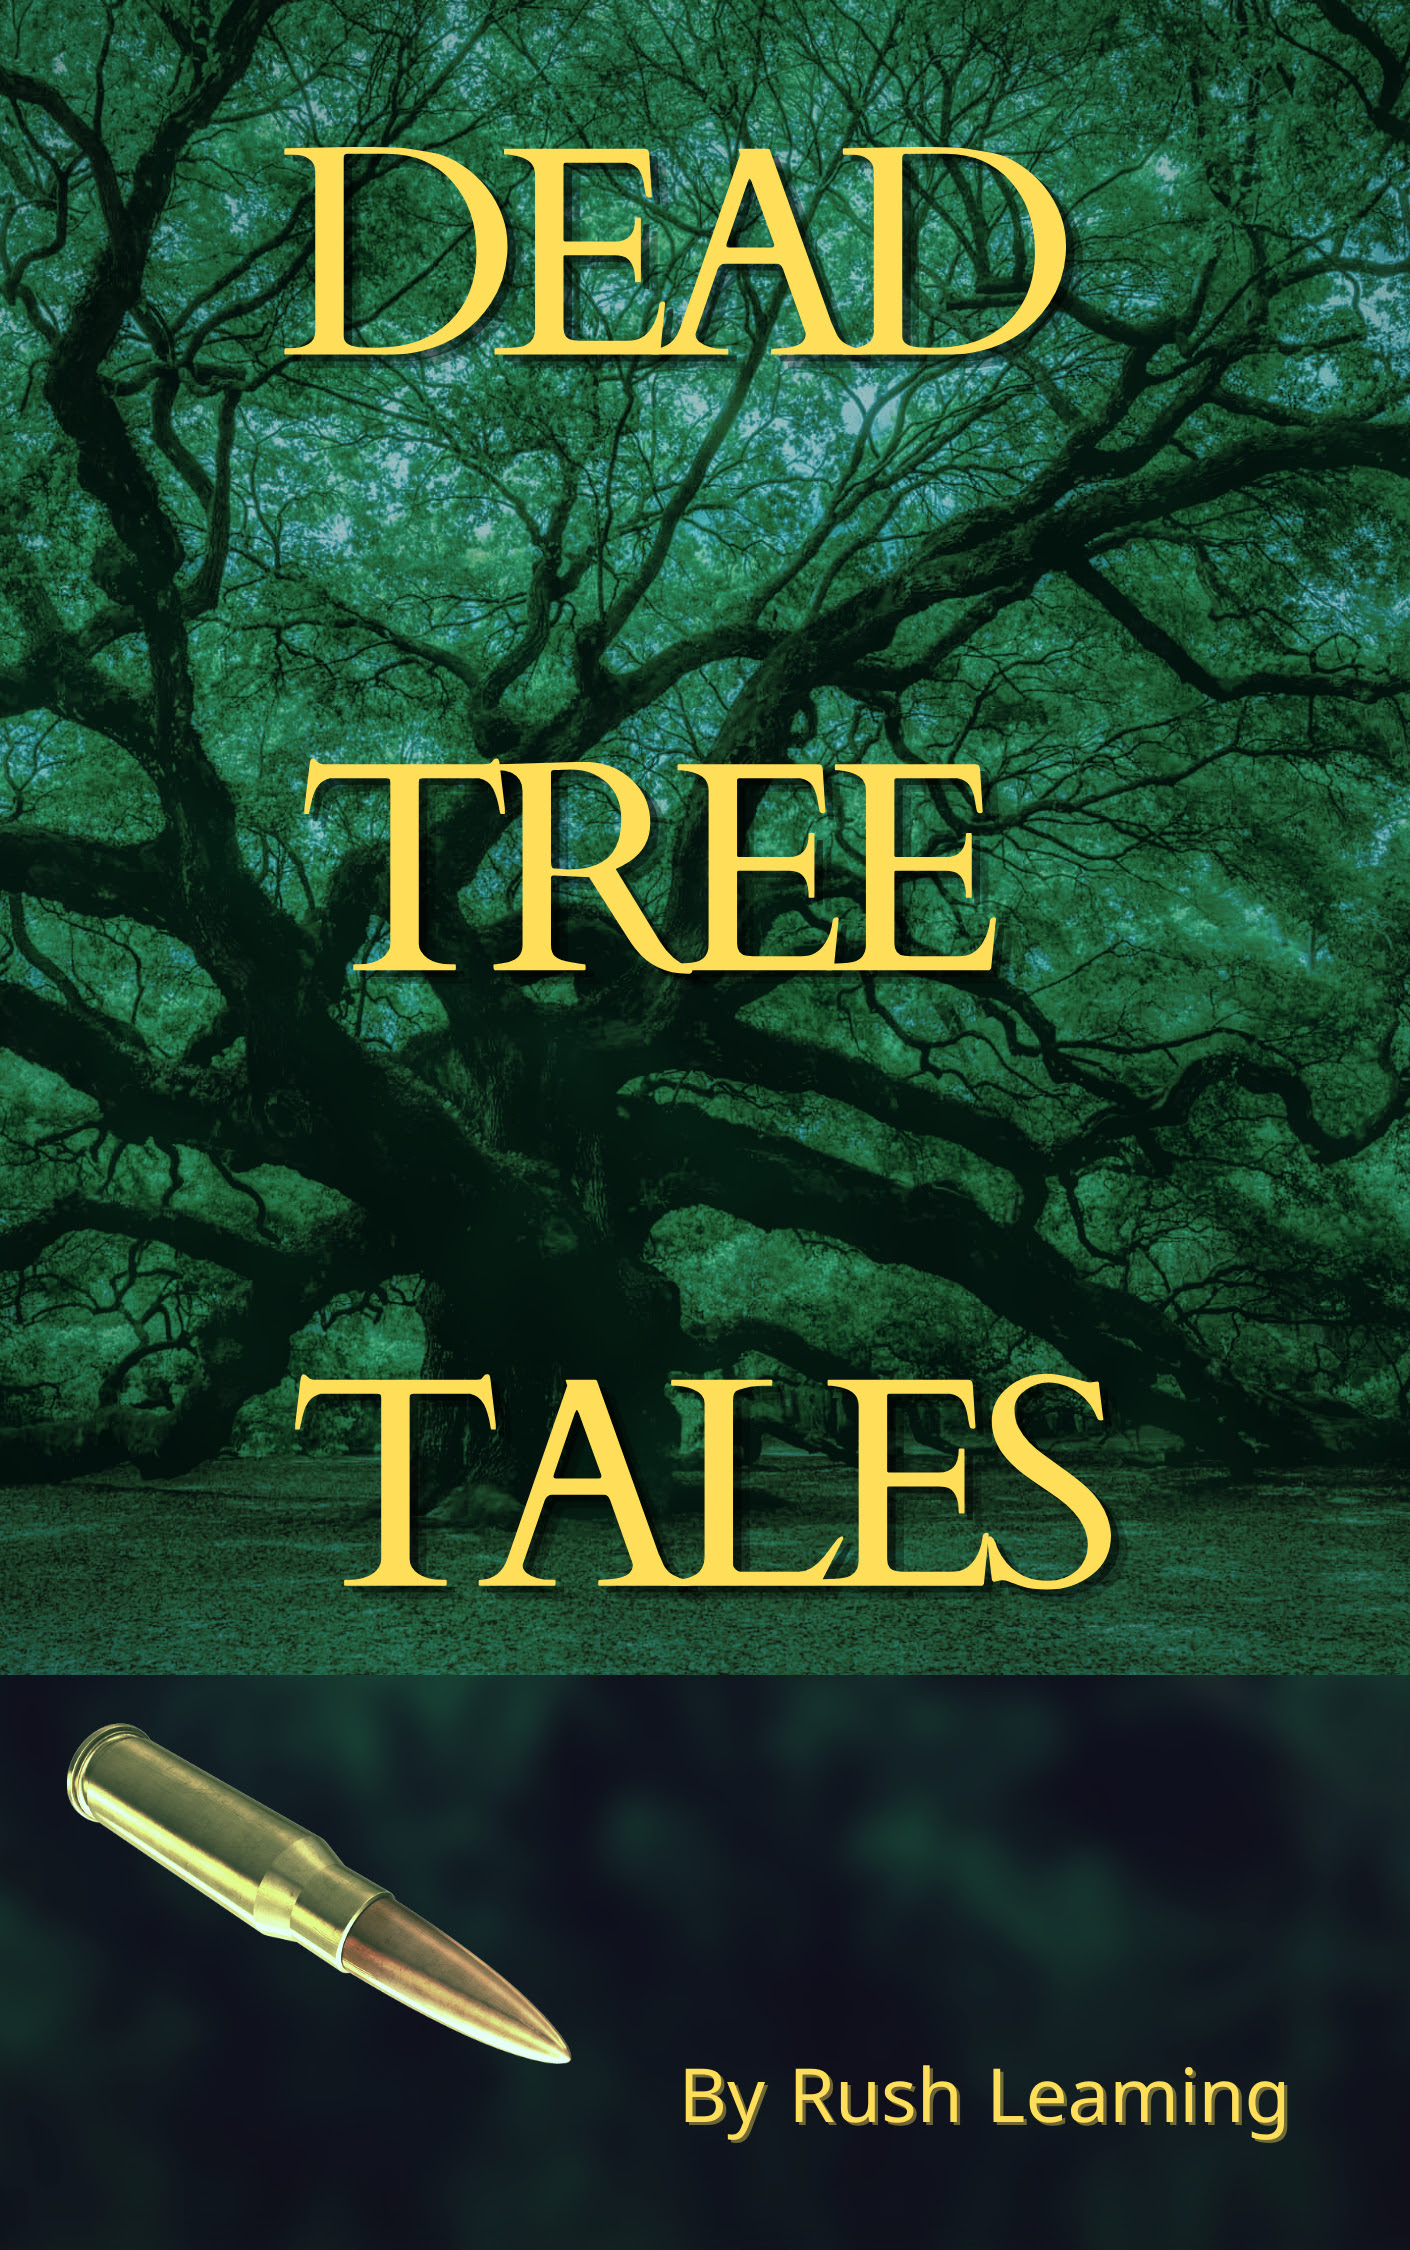 Dead Tree Tales by Rush Leaming